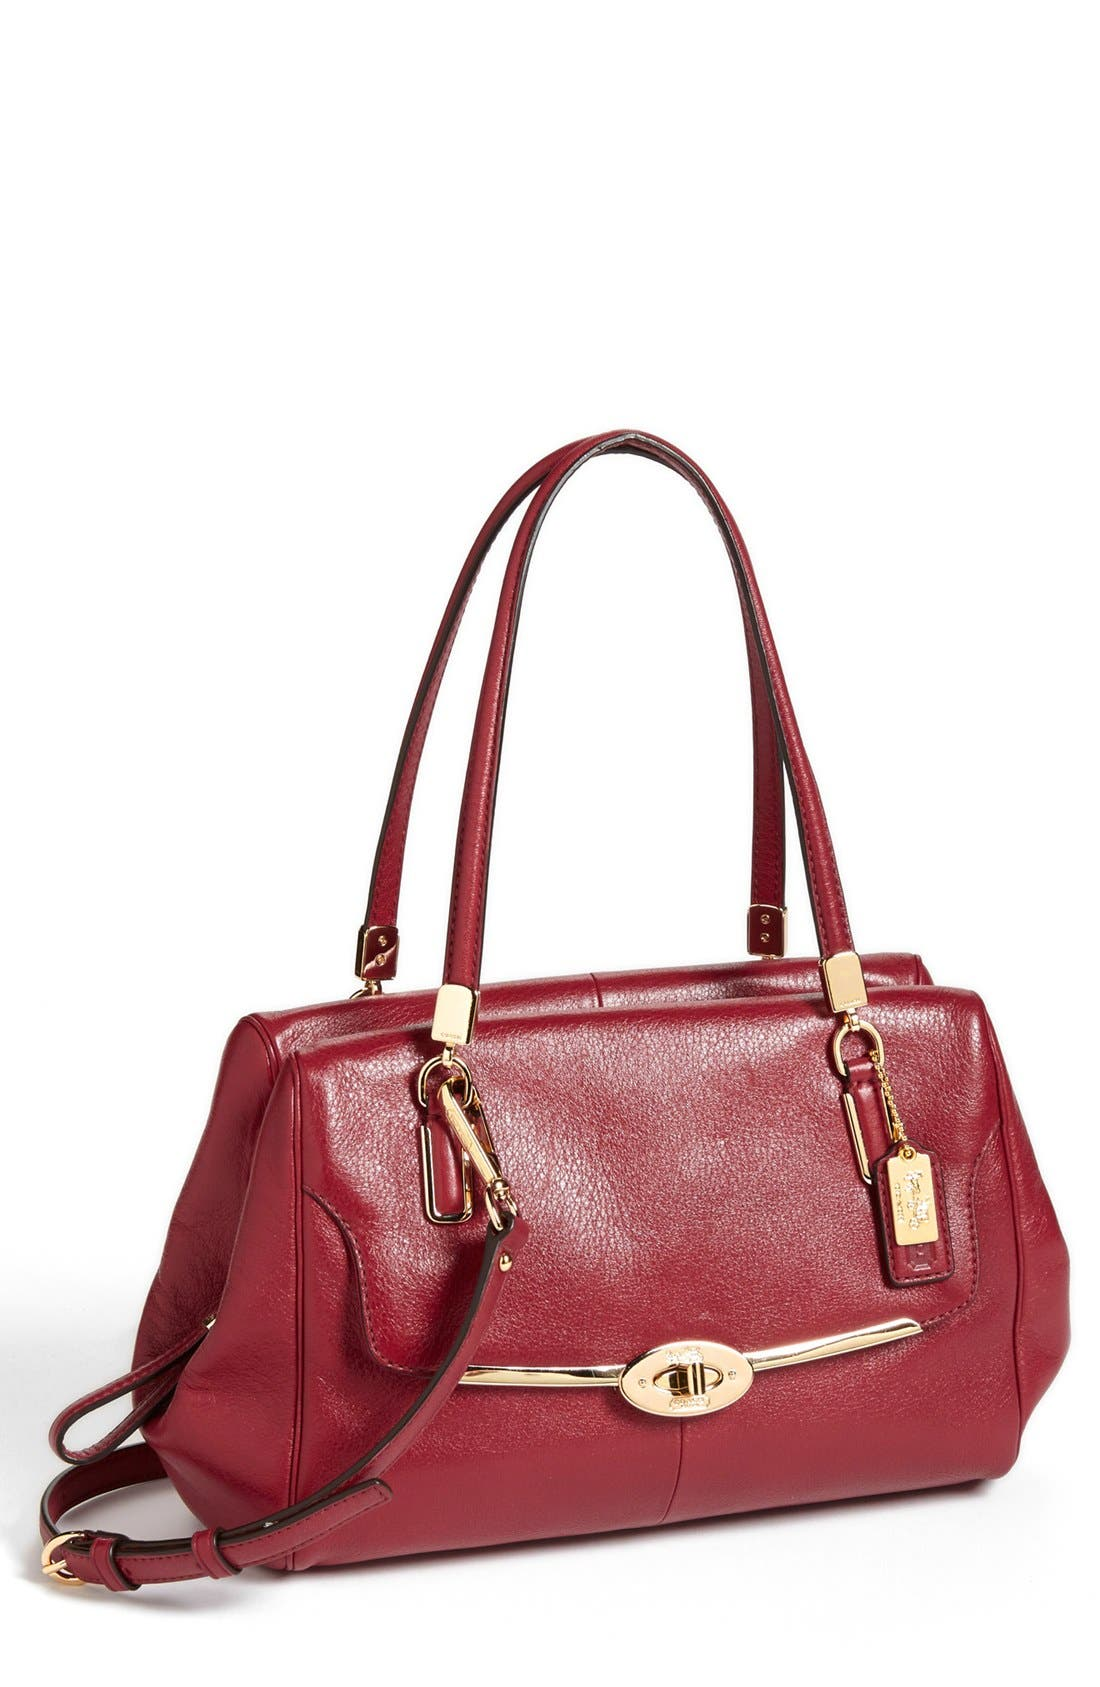 Alternate Image 1 Selected - COACH 'Madison' Leather Crossbody Bag